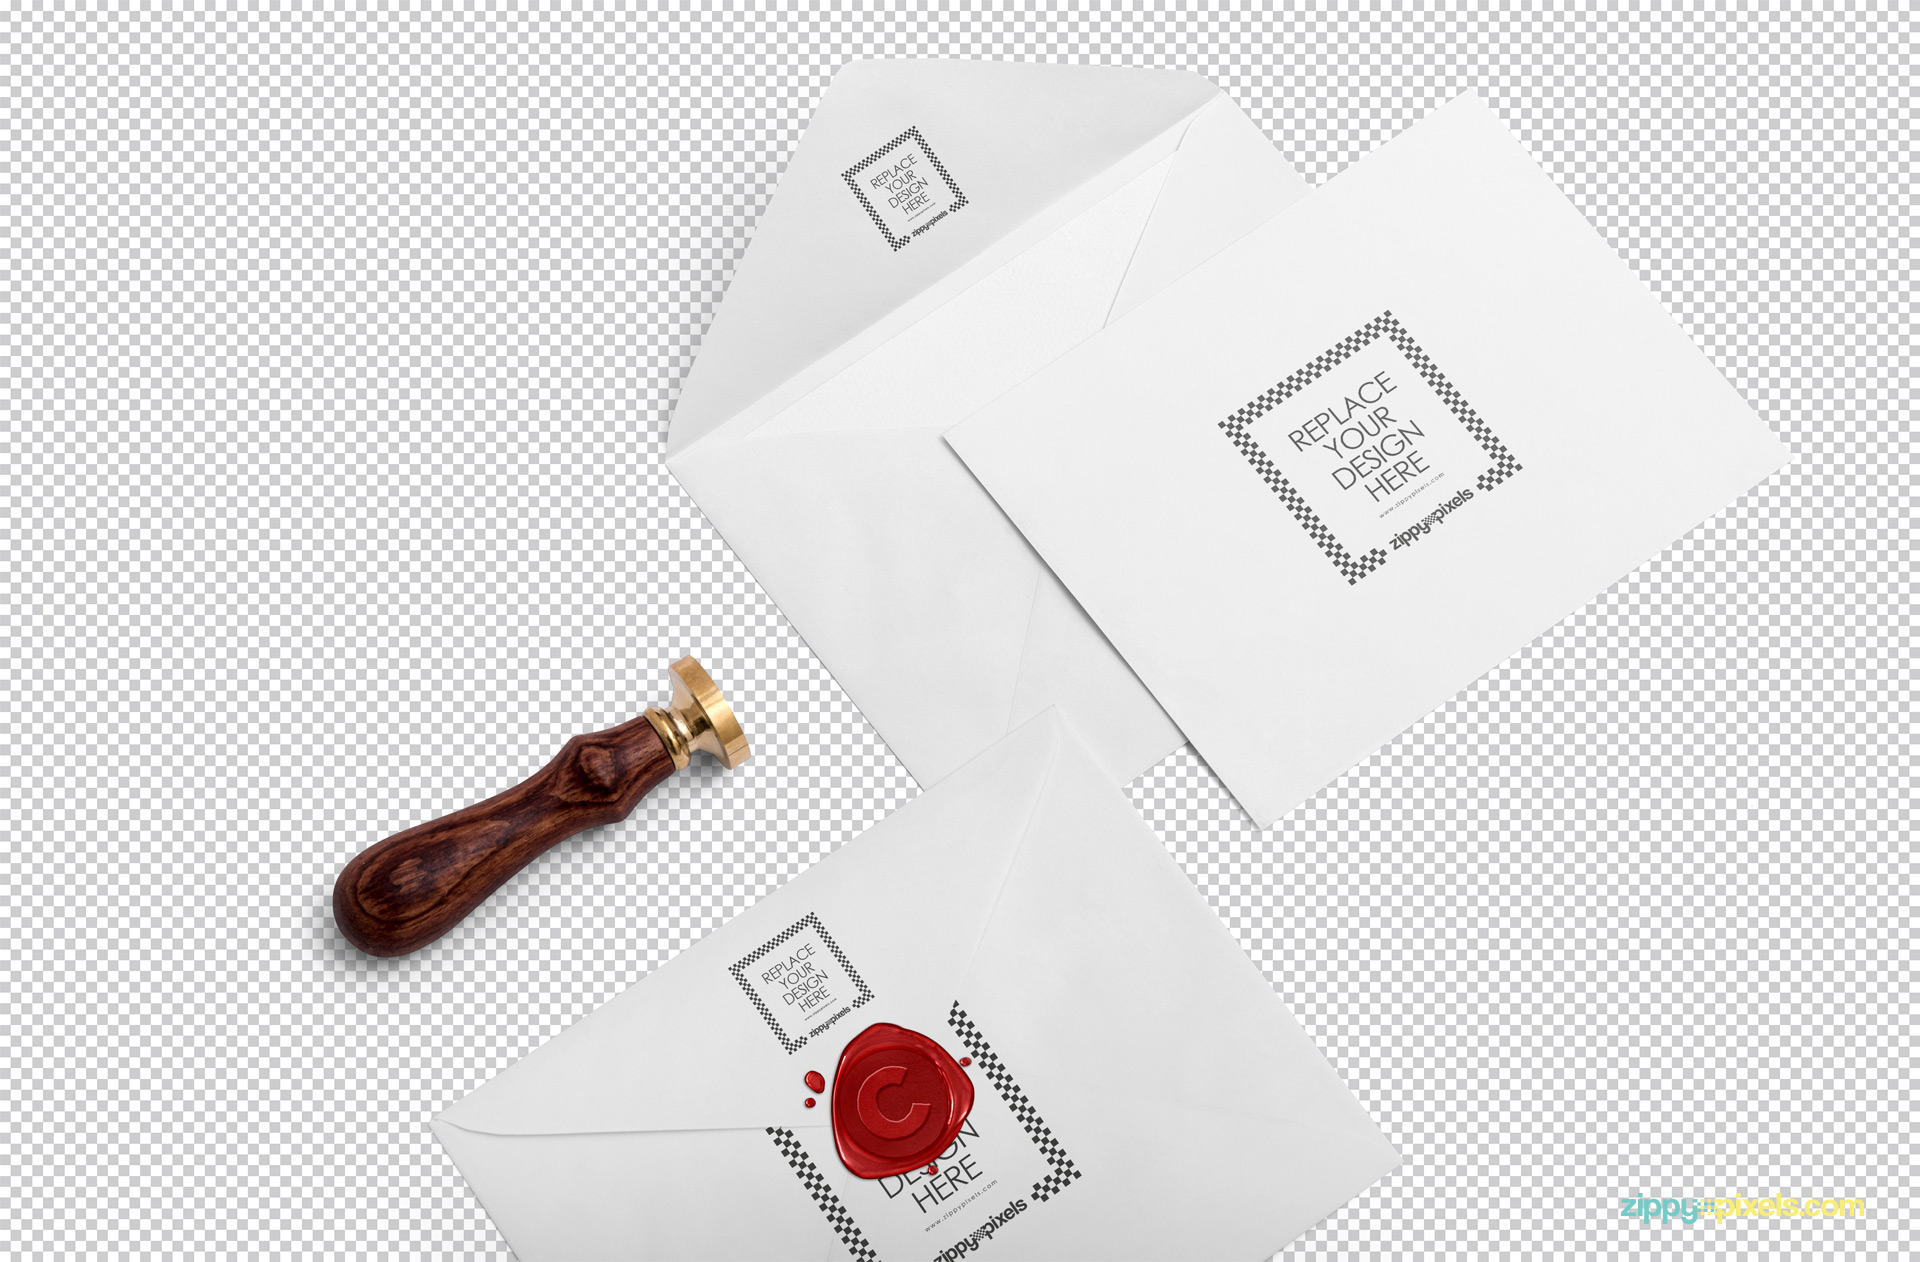 You can customize every single part of this invitation card mockup scene.